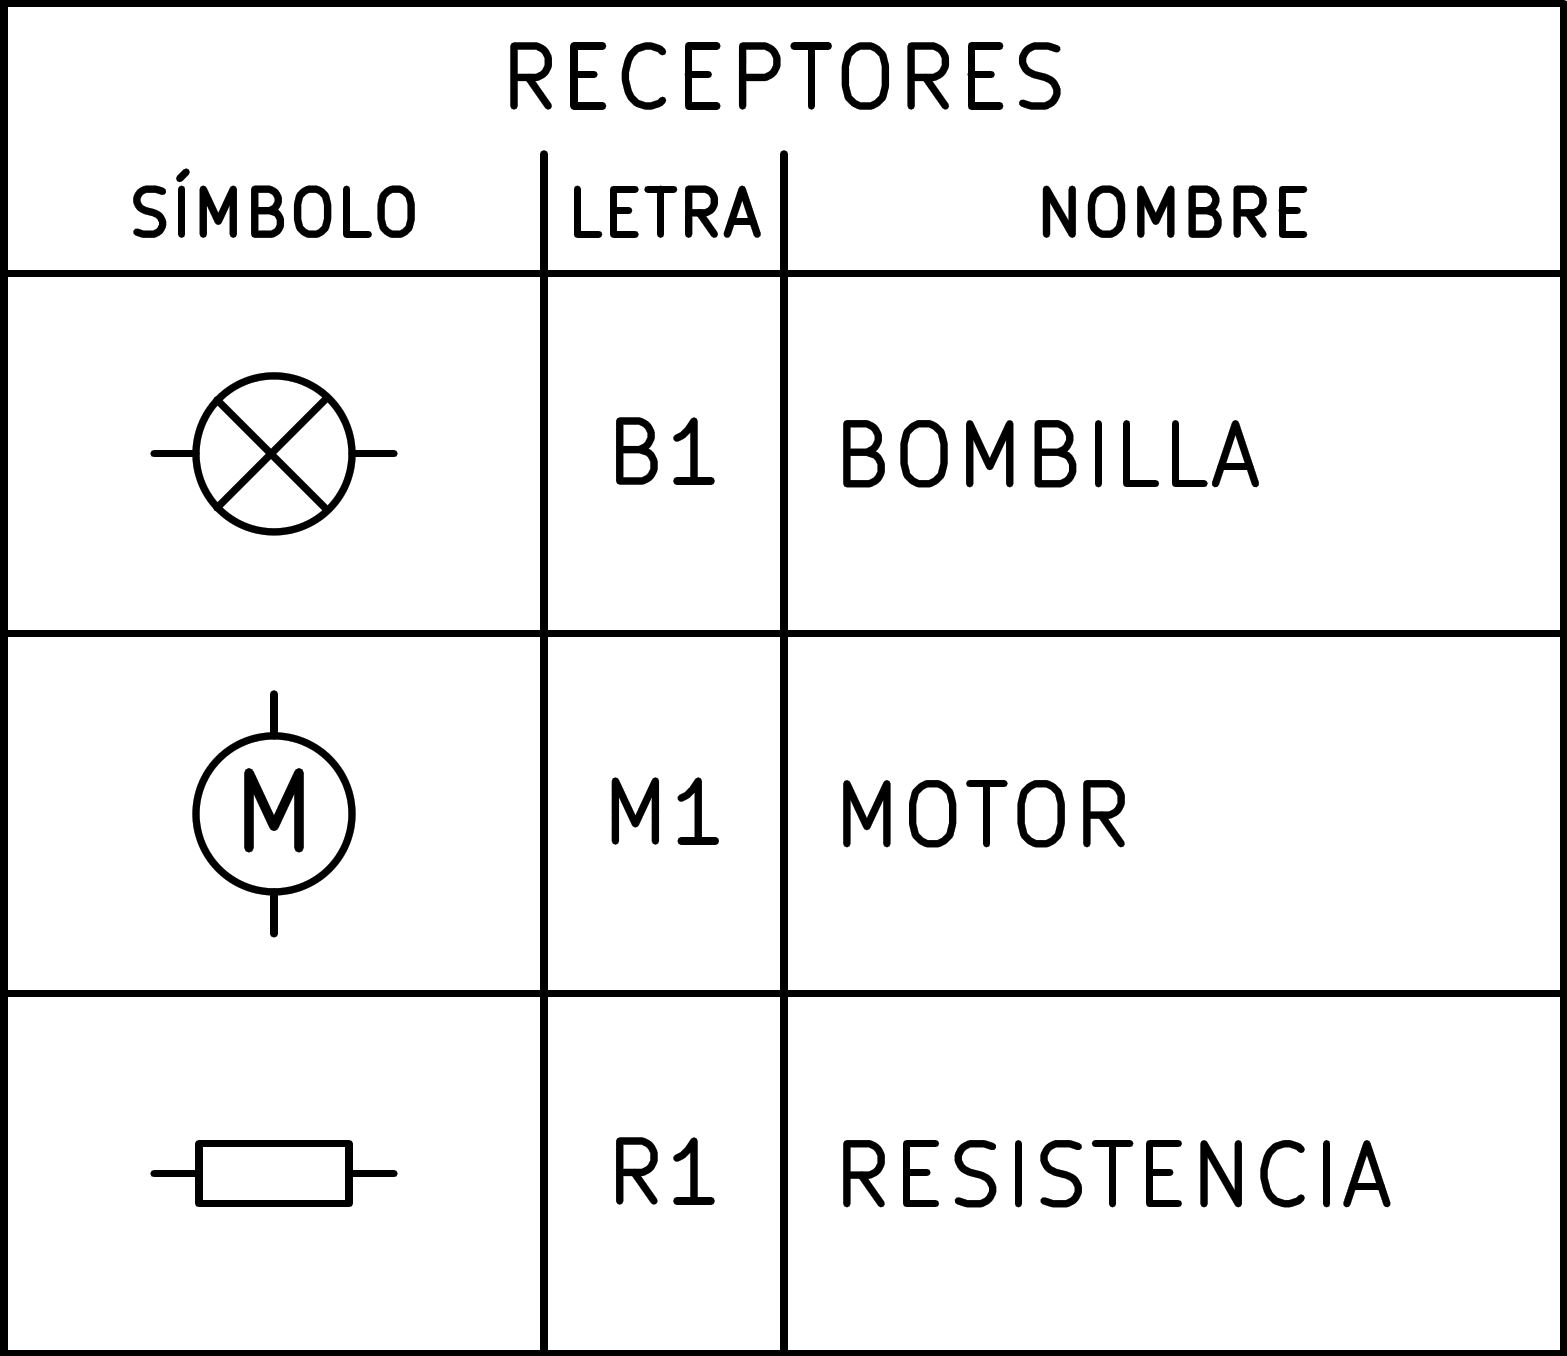 ../_images/electric-simbolos-receptores.png